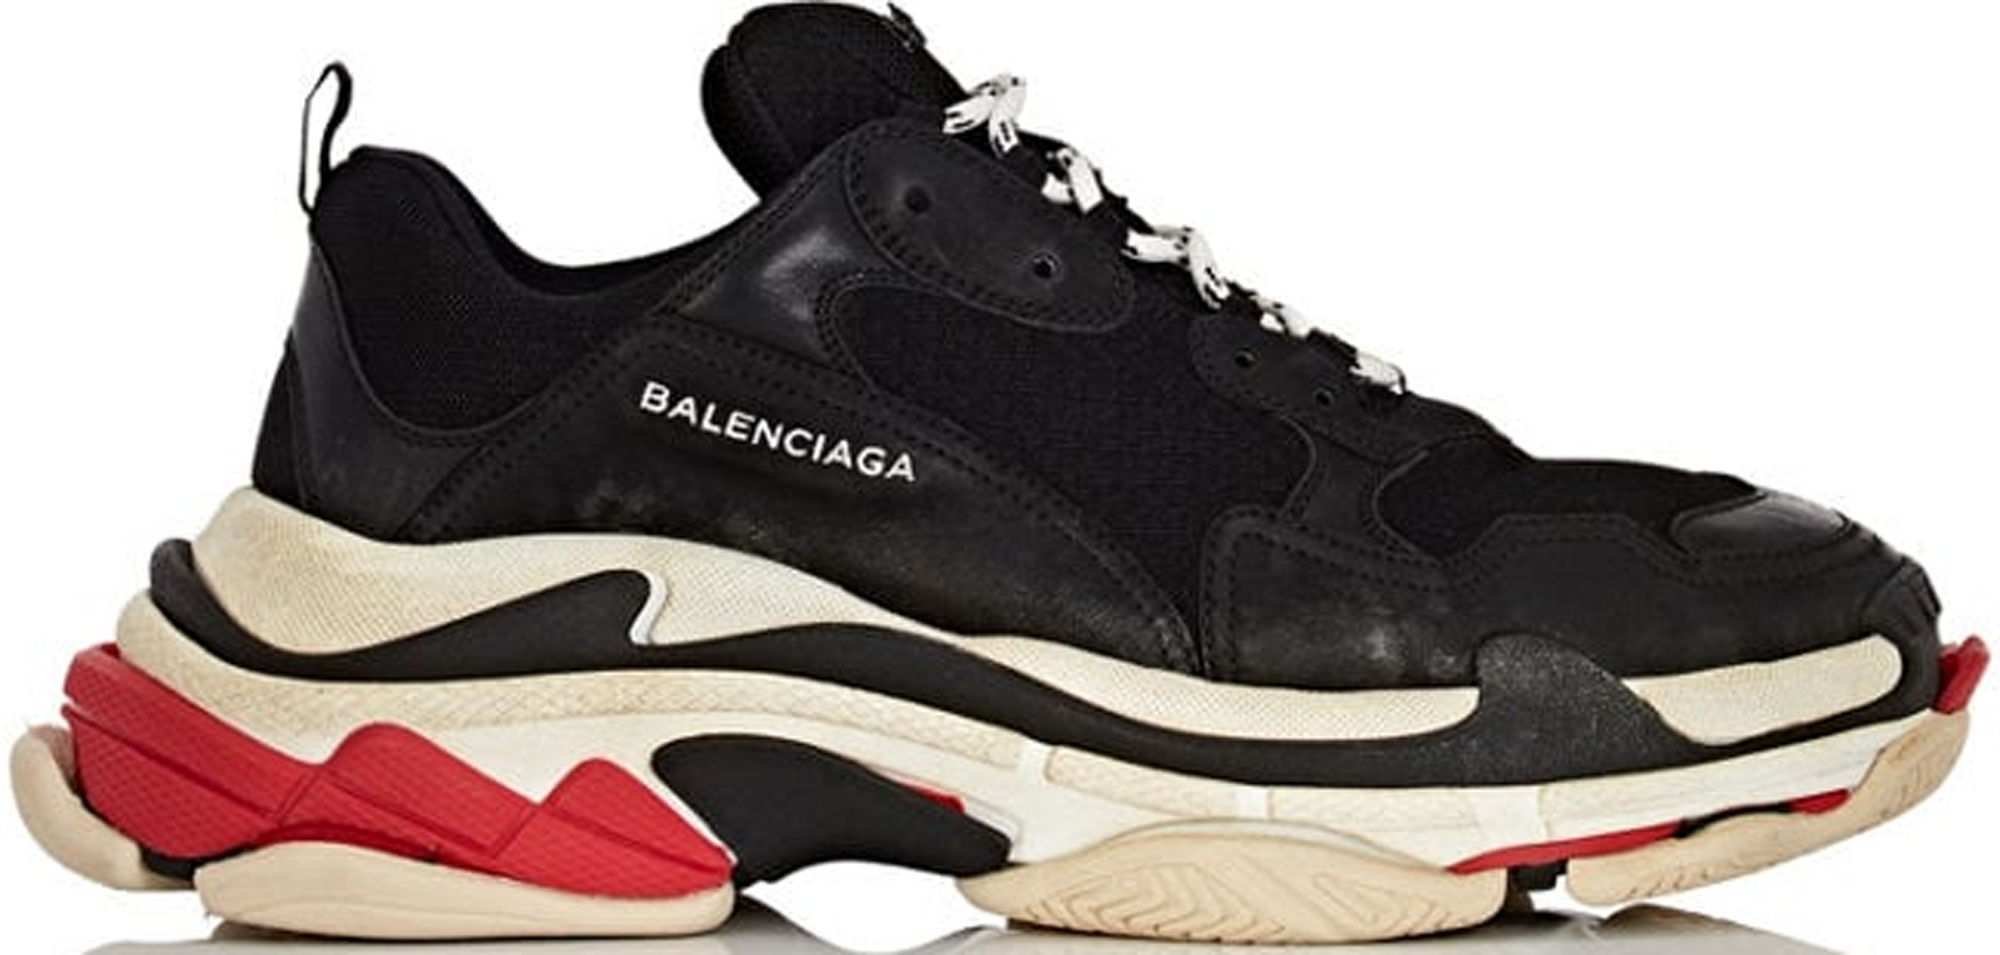 Balenciaga Treats Us to a Speed Trainer Triple Drop